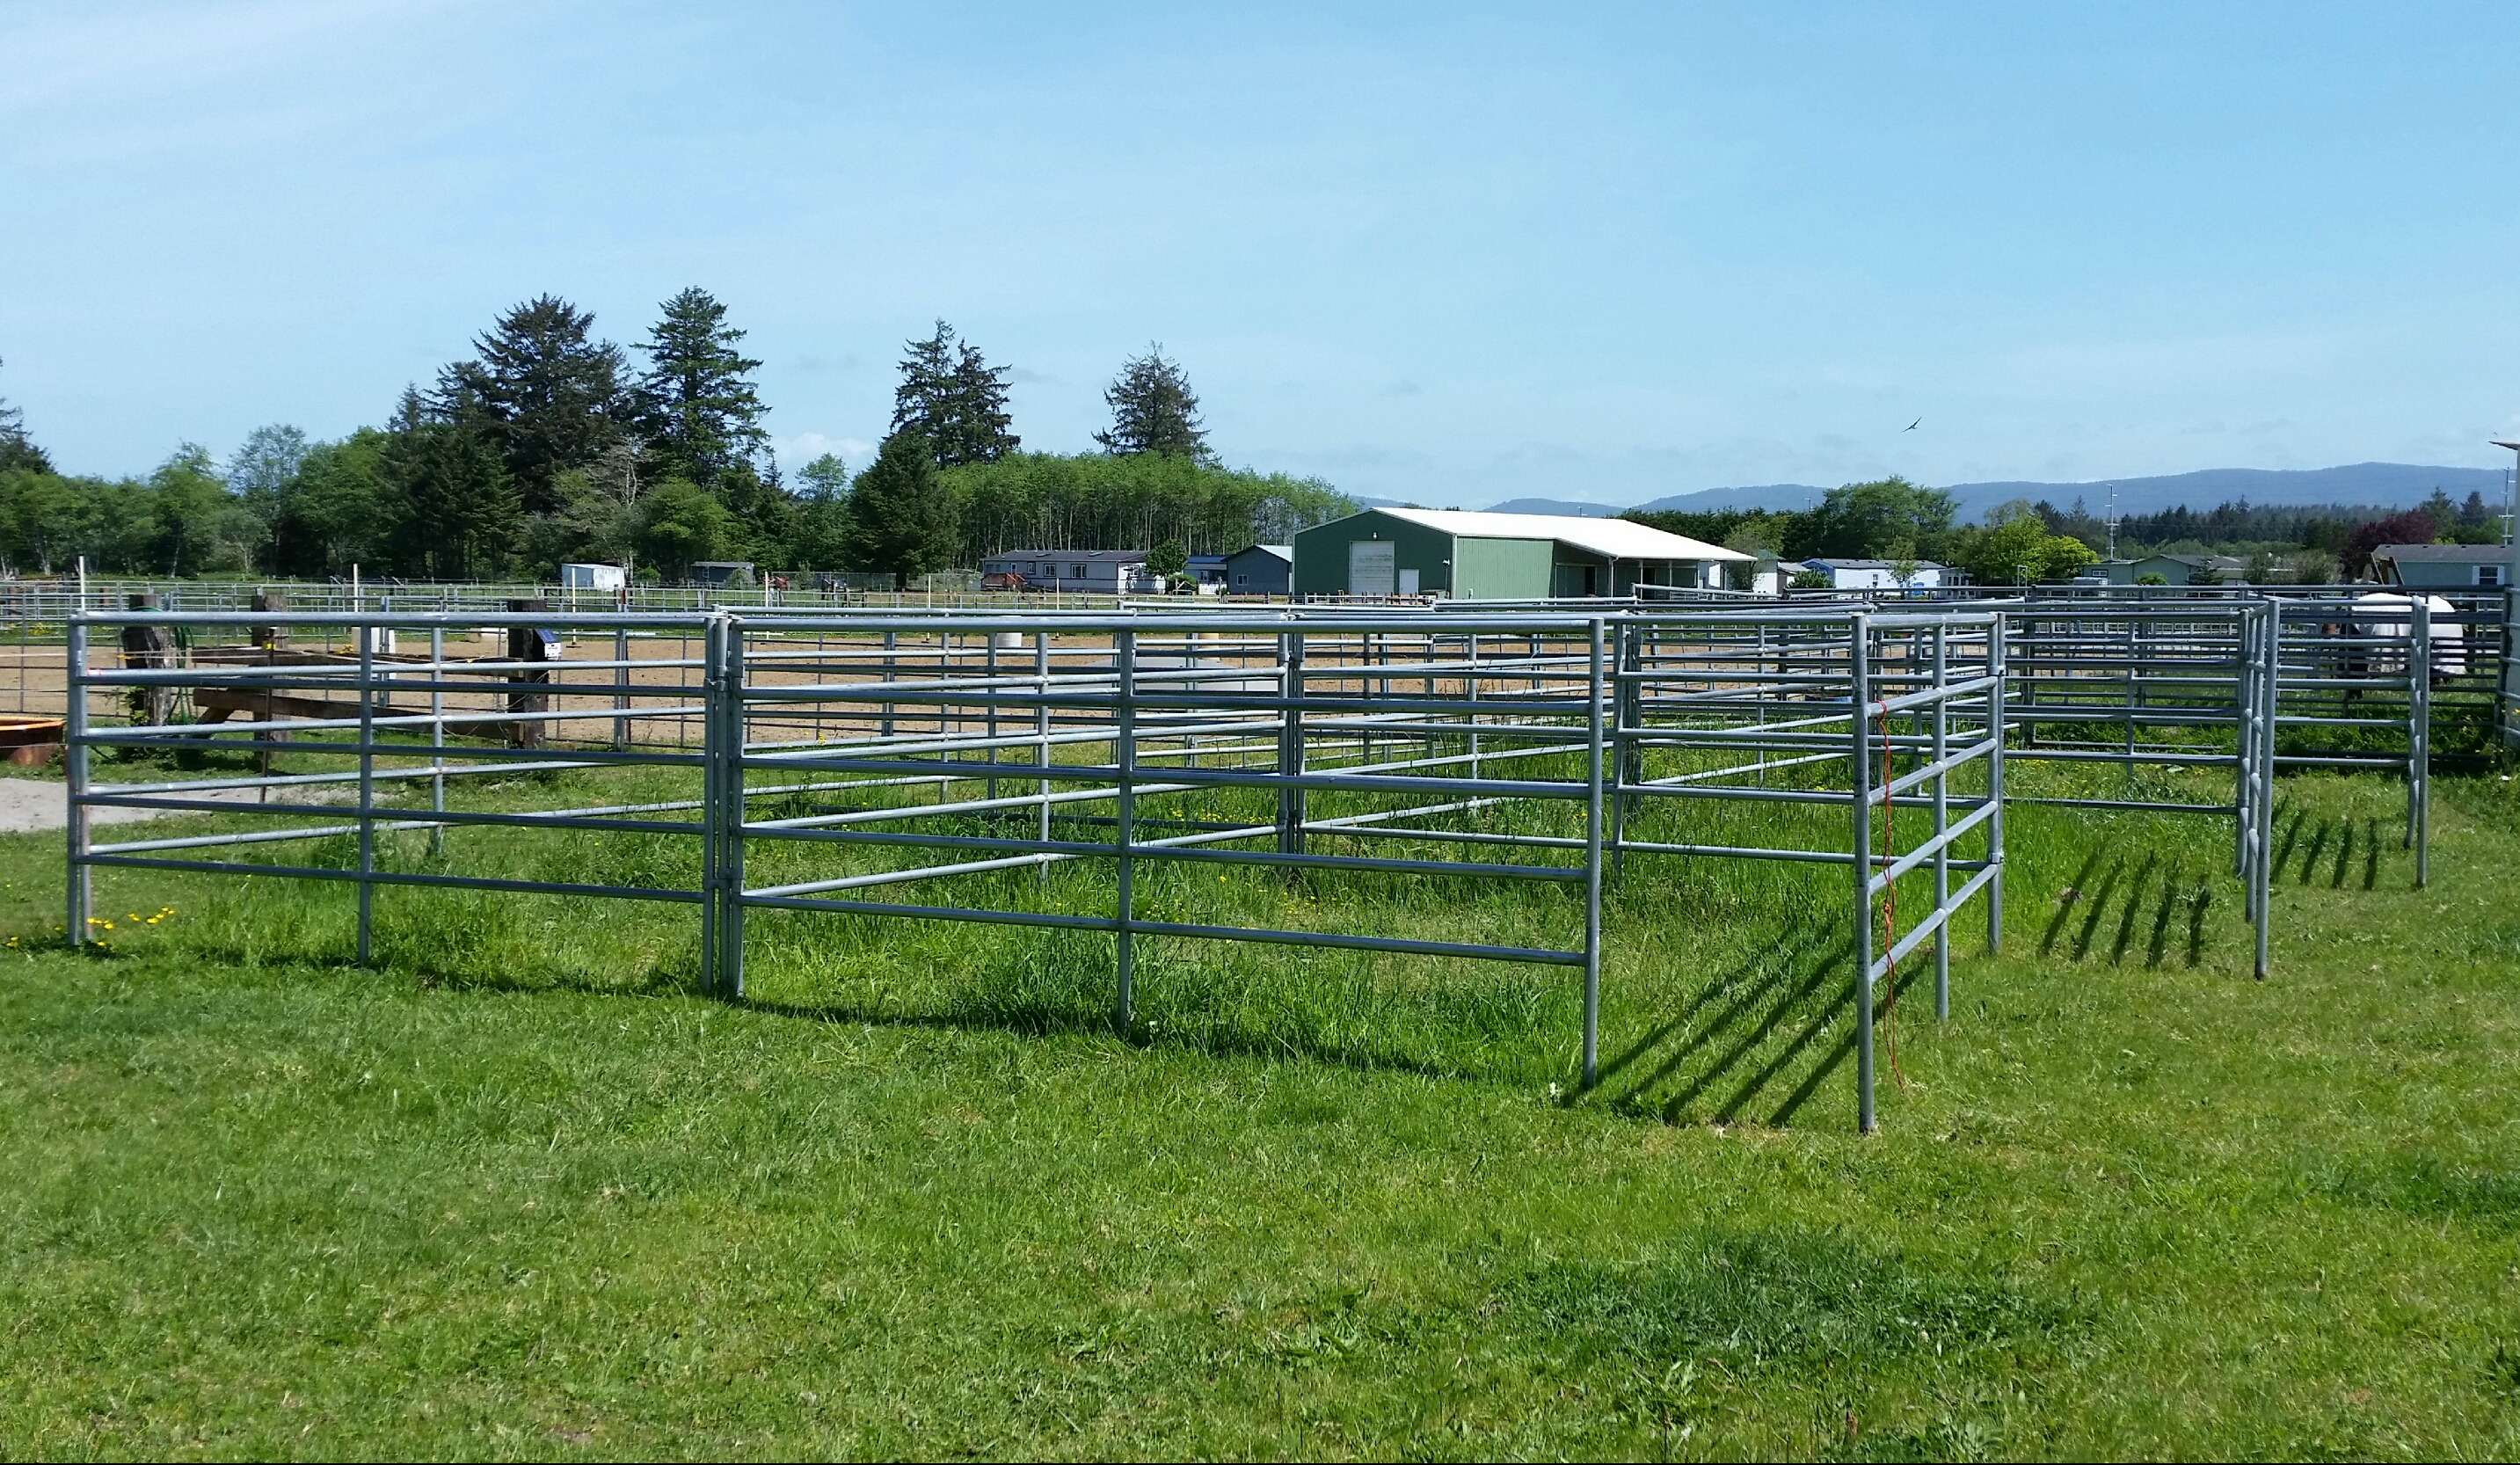 Stalls are matted and are 12' x 12' or 10' x 12'.